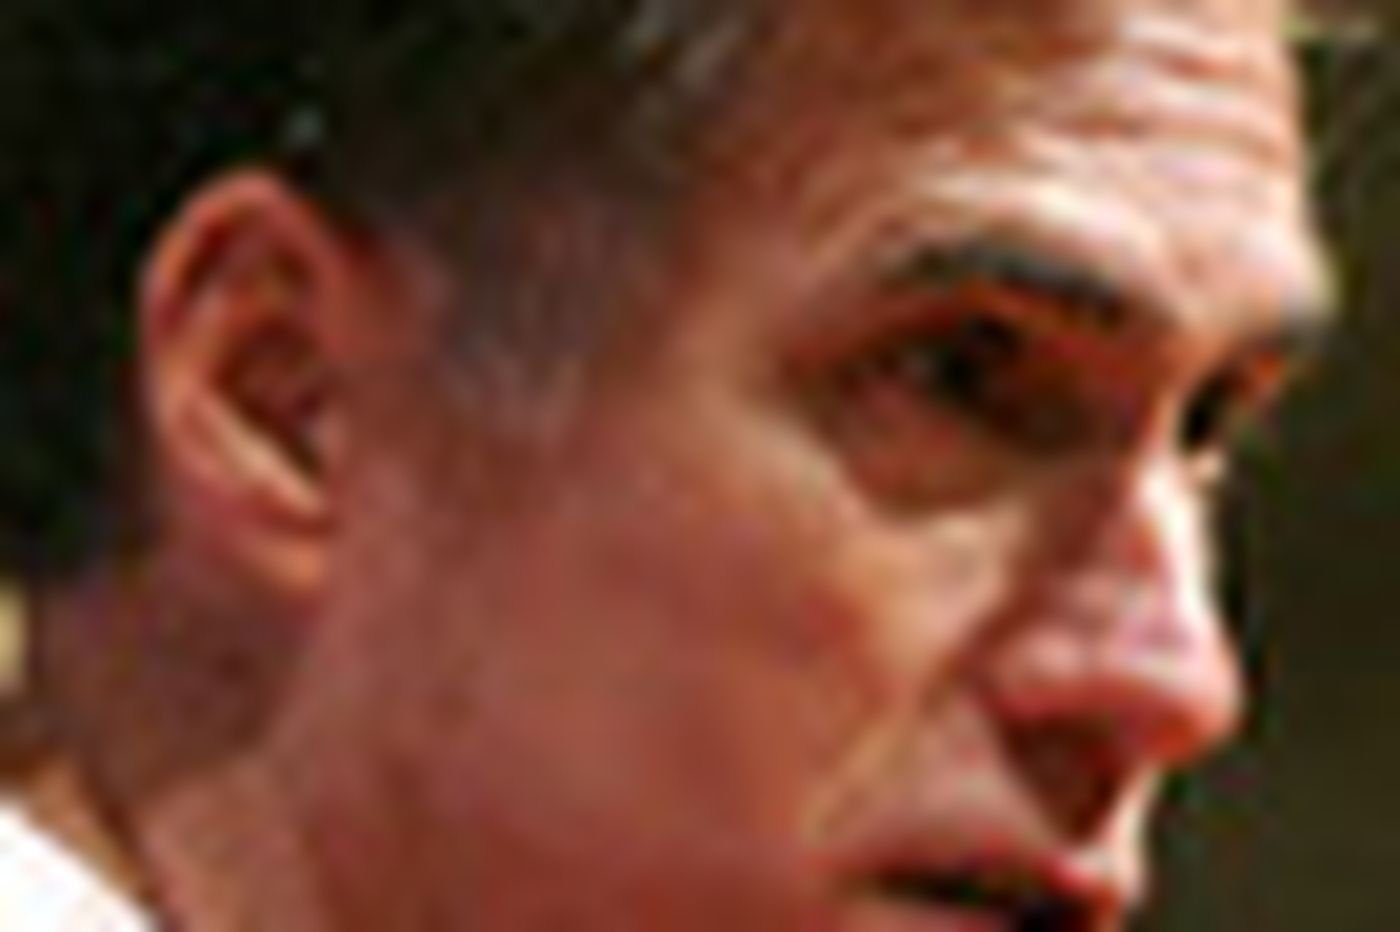 Romney, relenting, will talk about religion